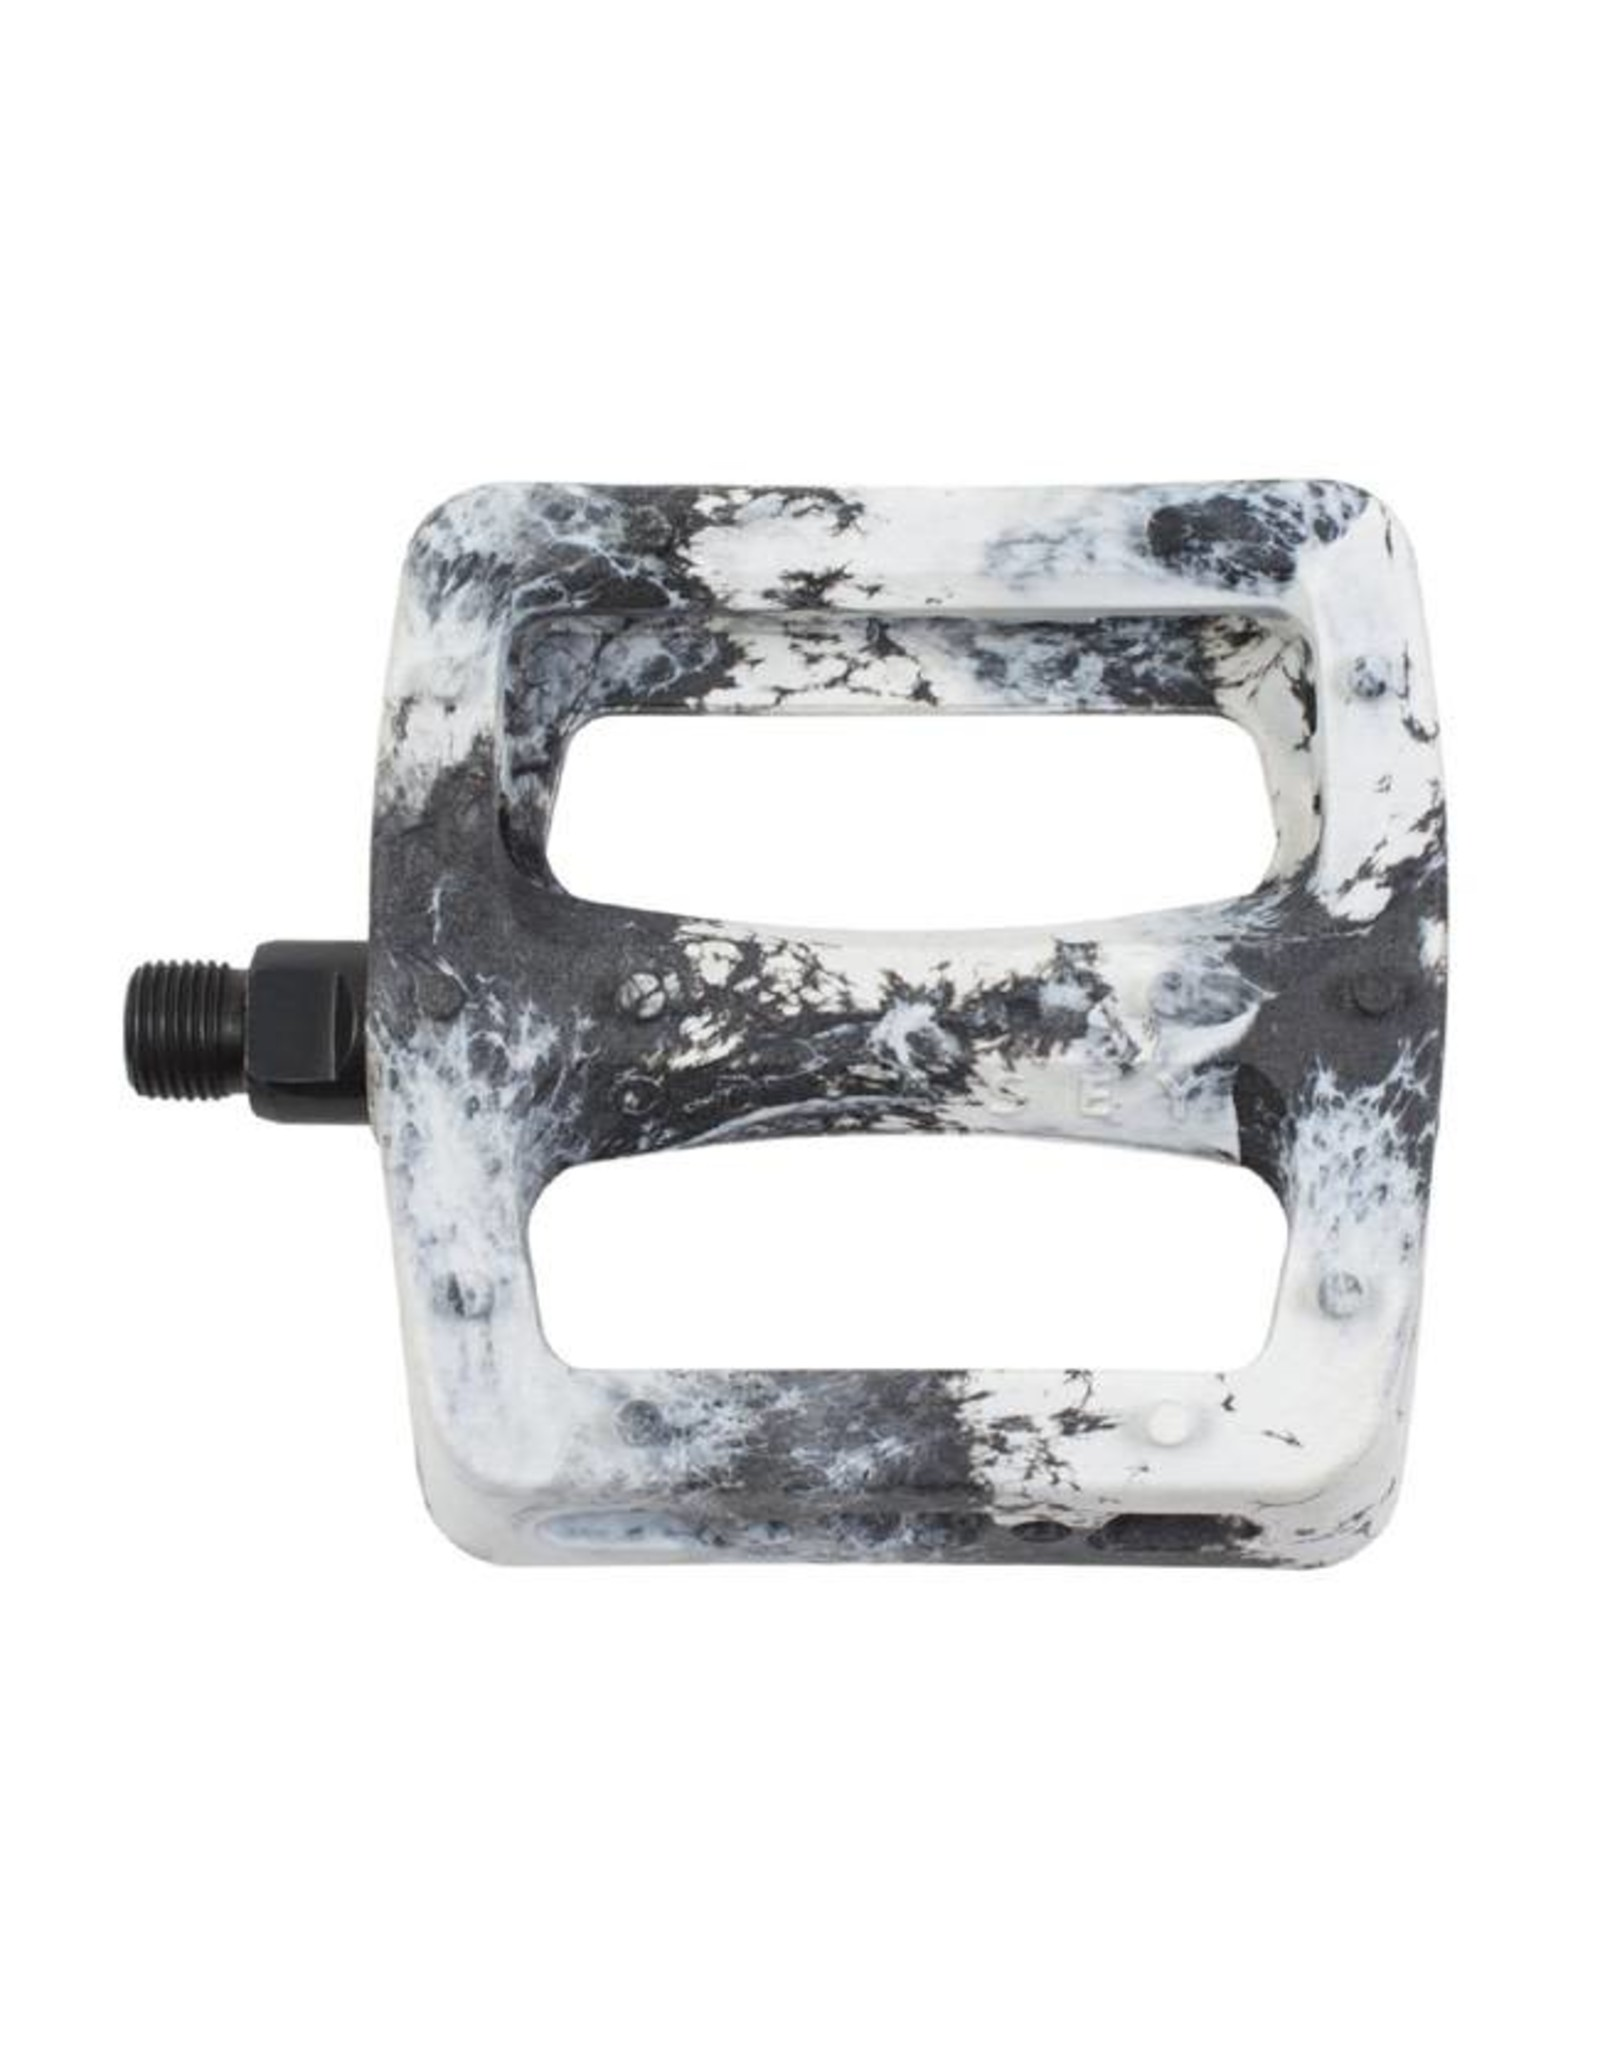 Odyssey Odyssey Twisted PC Pro Pedals Black/White